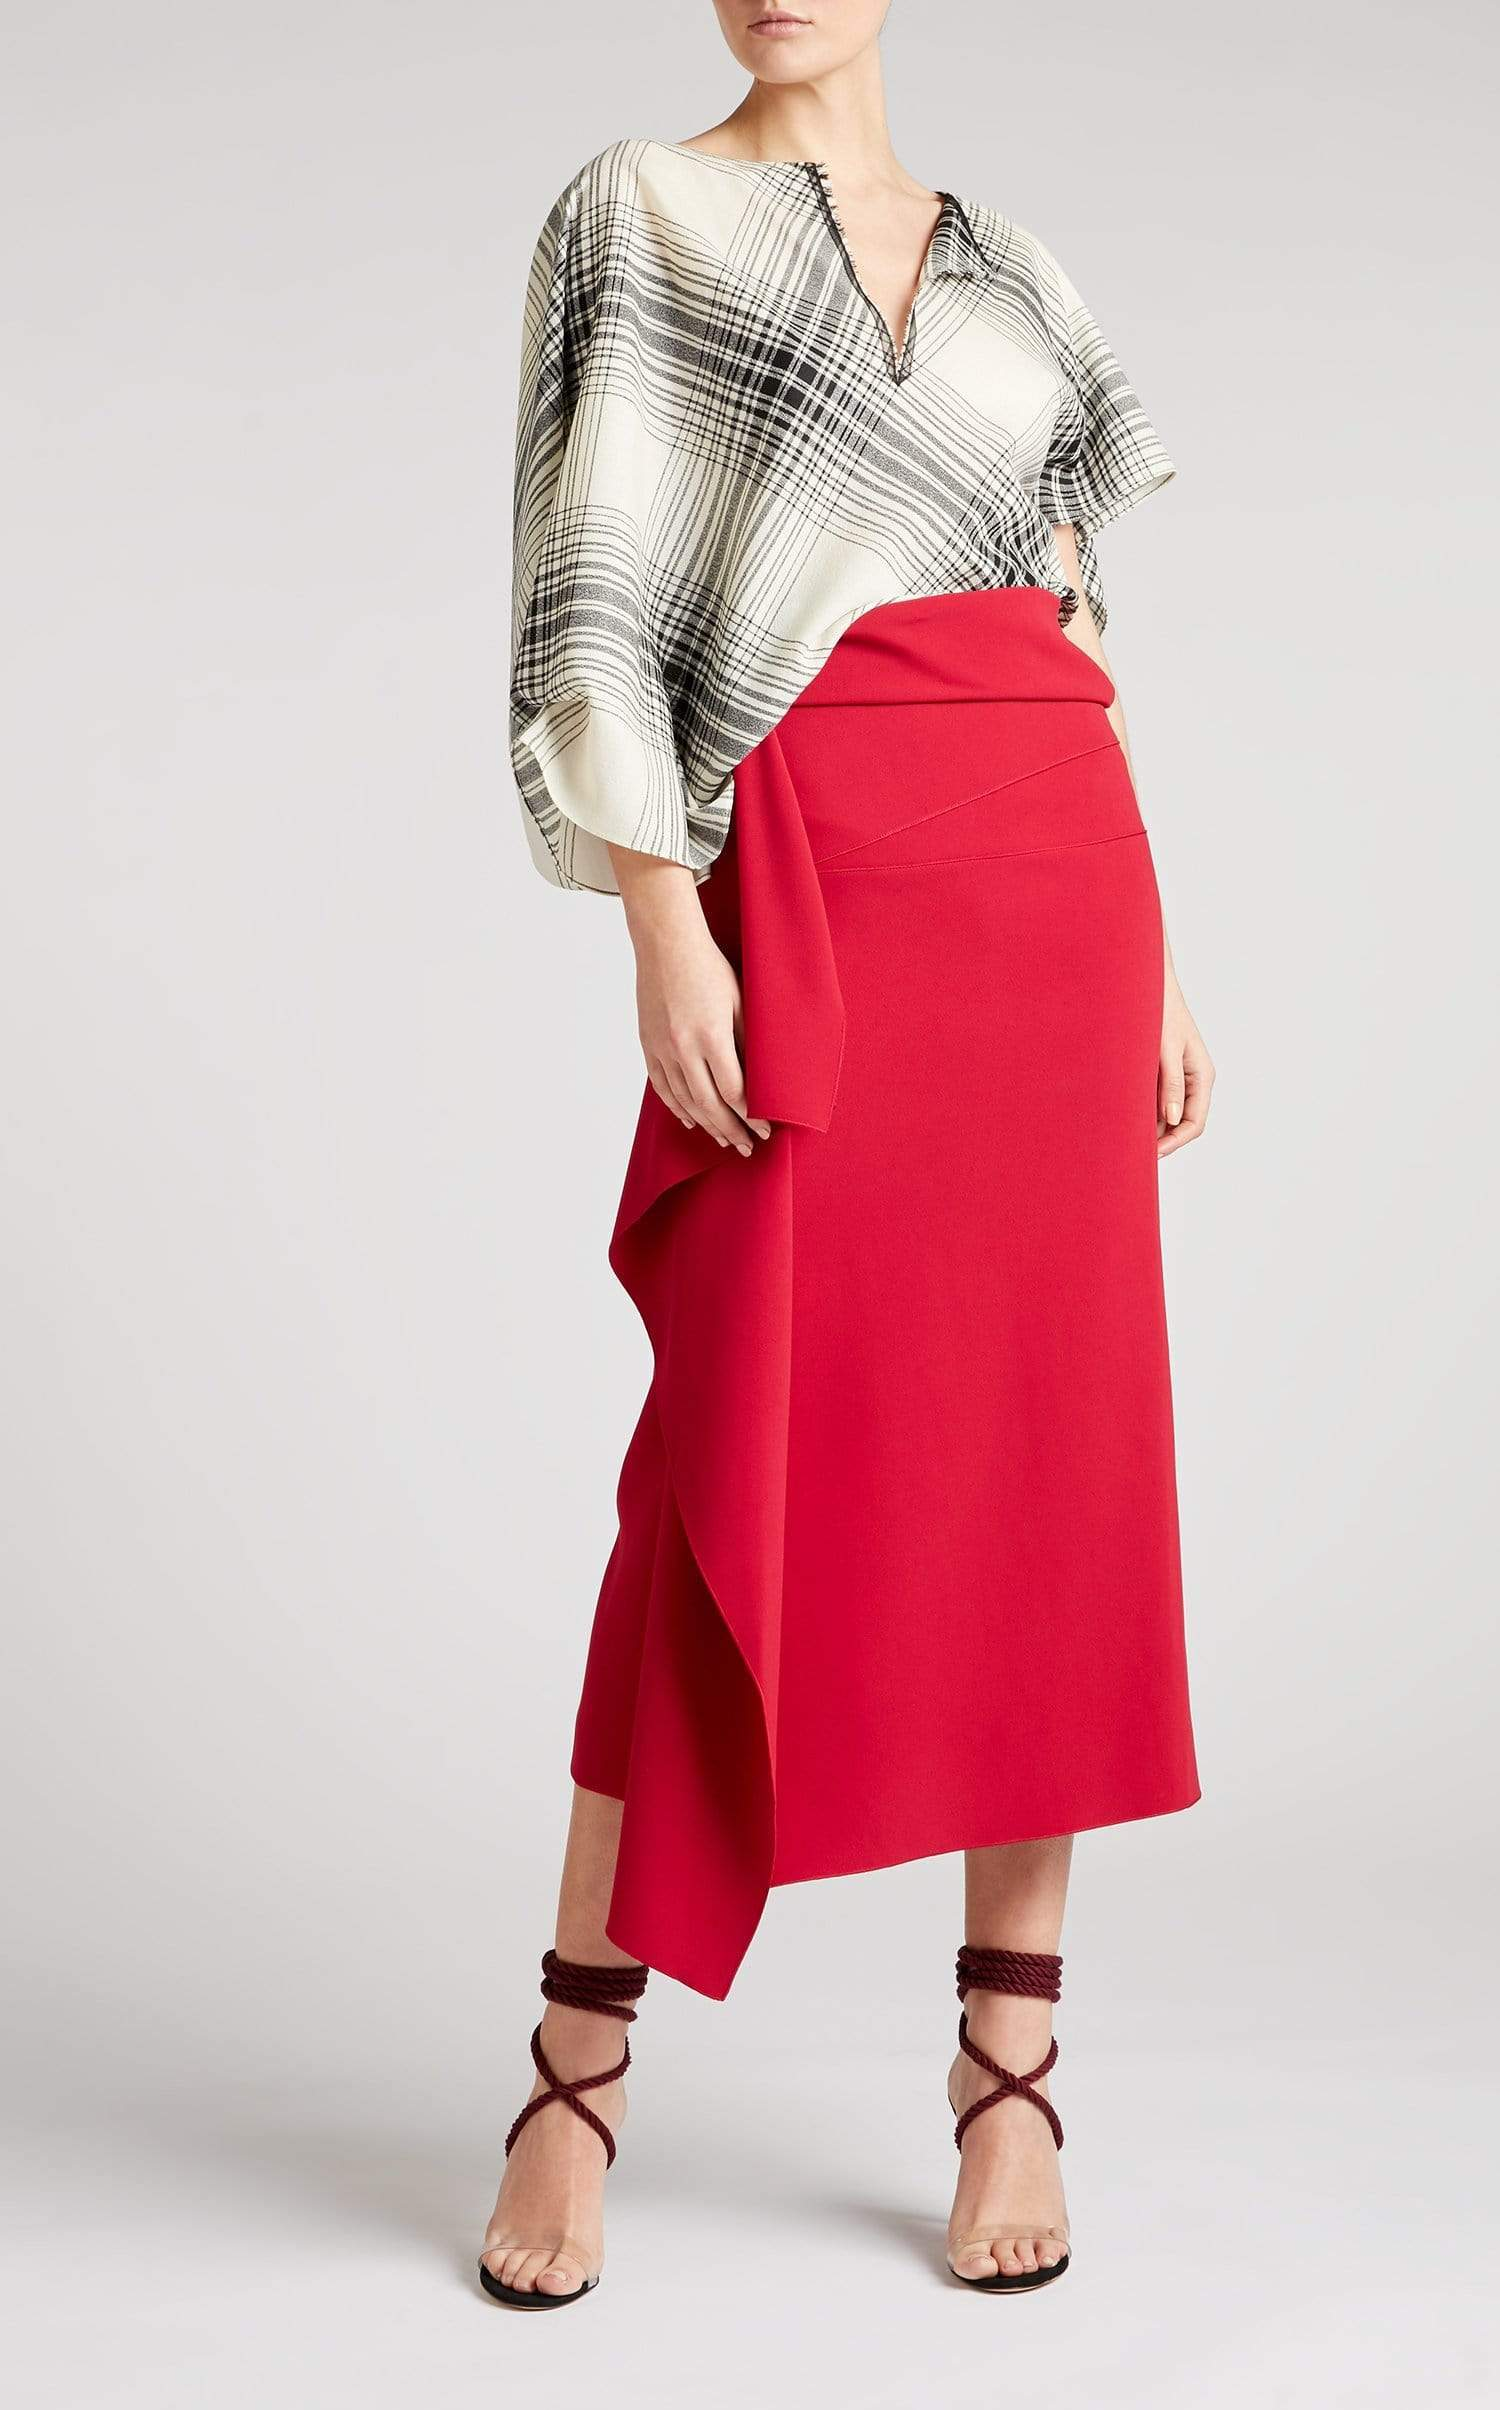 Kelley Skirt In Ruby from Roland Mouret